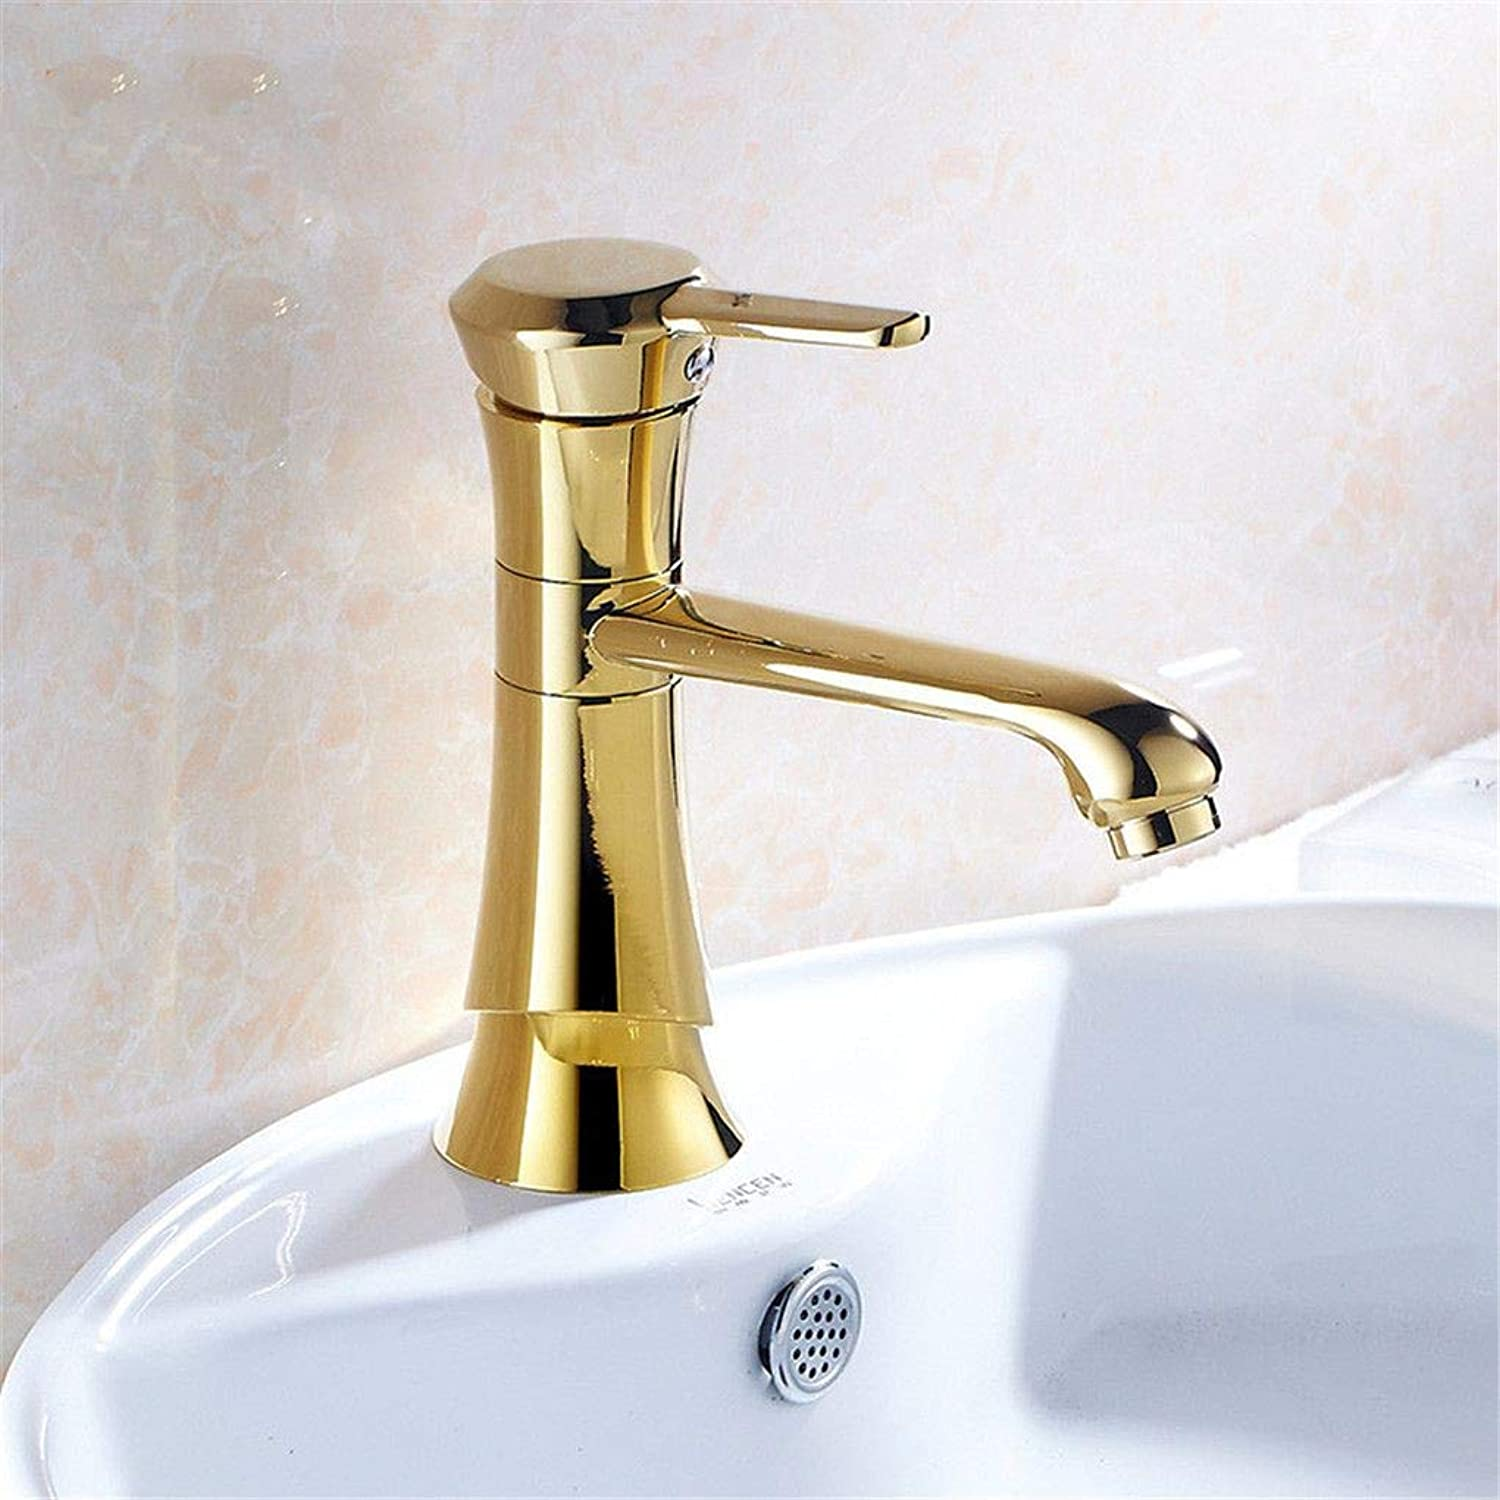 YAWEDA Copper Basin Faucet Bath Sink Faucet golden Hot and Cold Water Mixer Washbasin Quadrangular Fashion Faucet with Aerator Single Handle